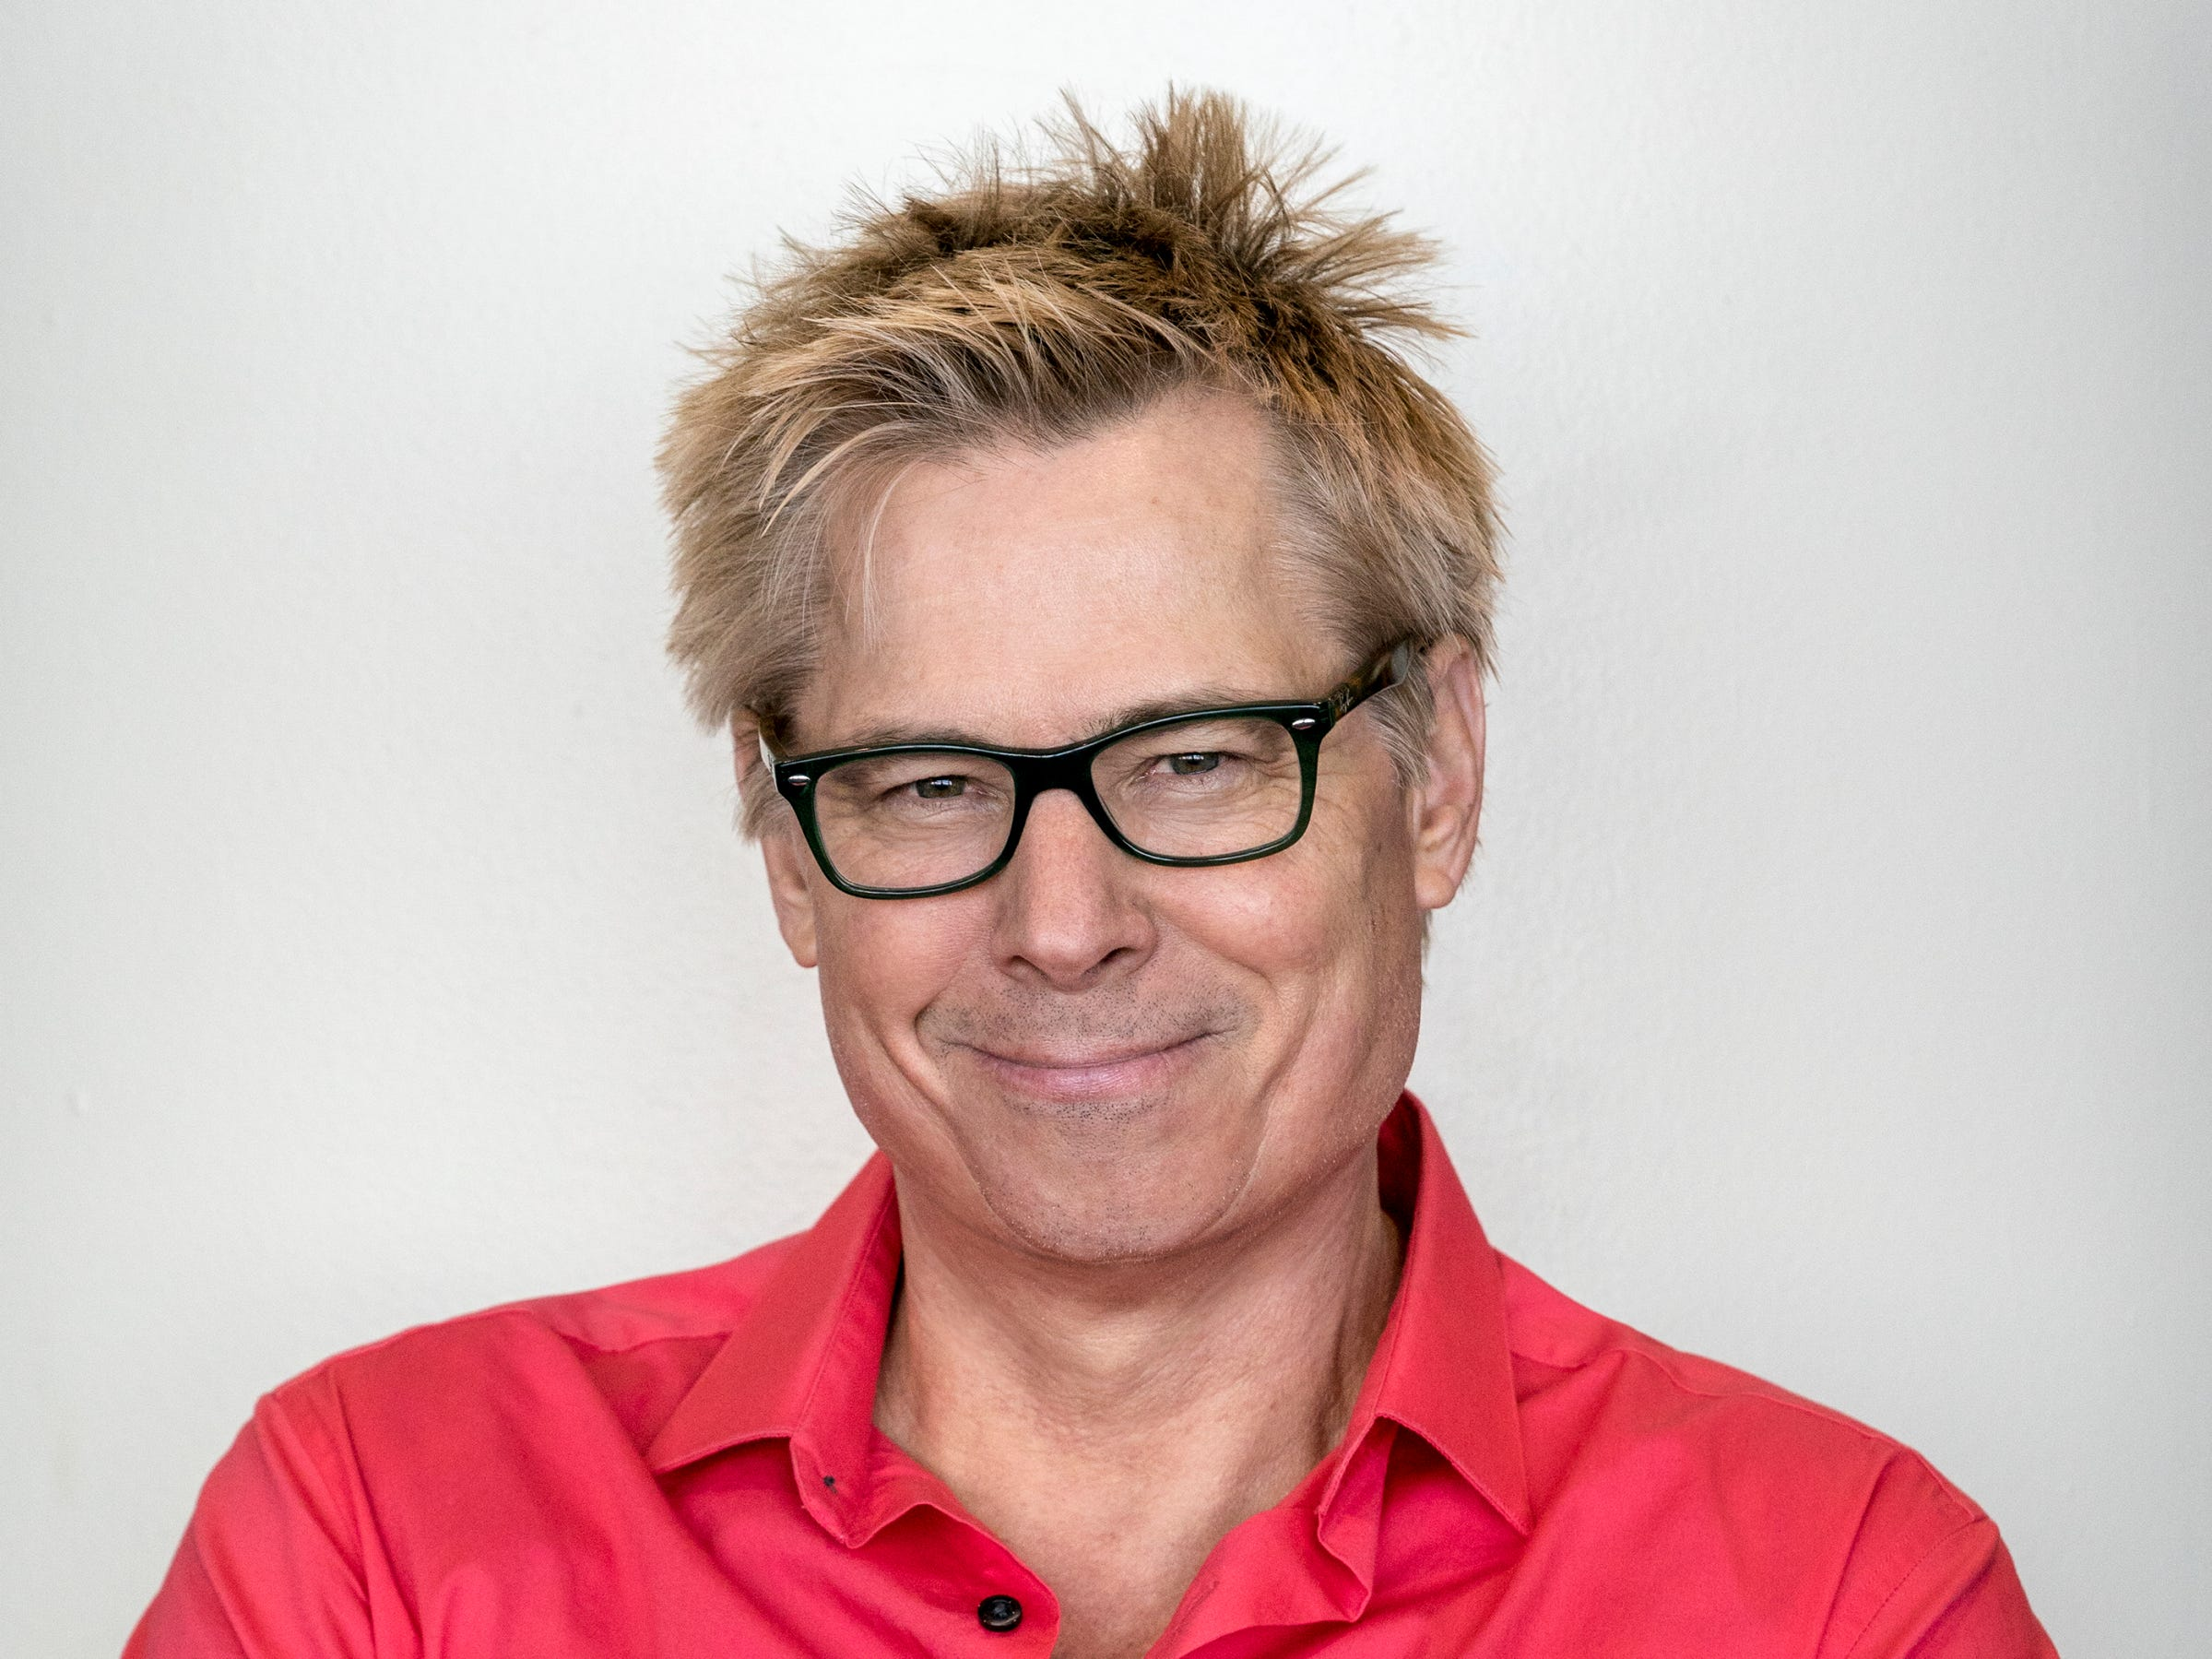 Kato Kaelin to participate in the second season of BIG BROTHER: CELEBRITY EDITION. BIG BROTHER: CELEBRITY EDITION launches with a two-night premiere event Monday, Jan. 21 (8:00-9:00 PM, ET/PT) and Tuesday, Jan. 22 (8:00-9:00 PM, ET/PT) on the CBS Television Network.   Photo: Skip Bolen/CBS  ©2019 CBS Broadcasting, Inc. All Rights Reserved